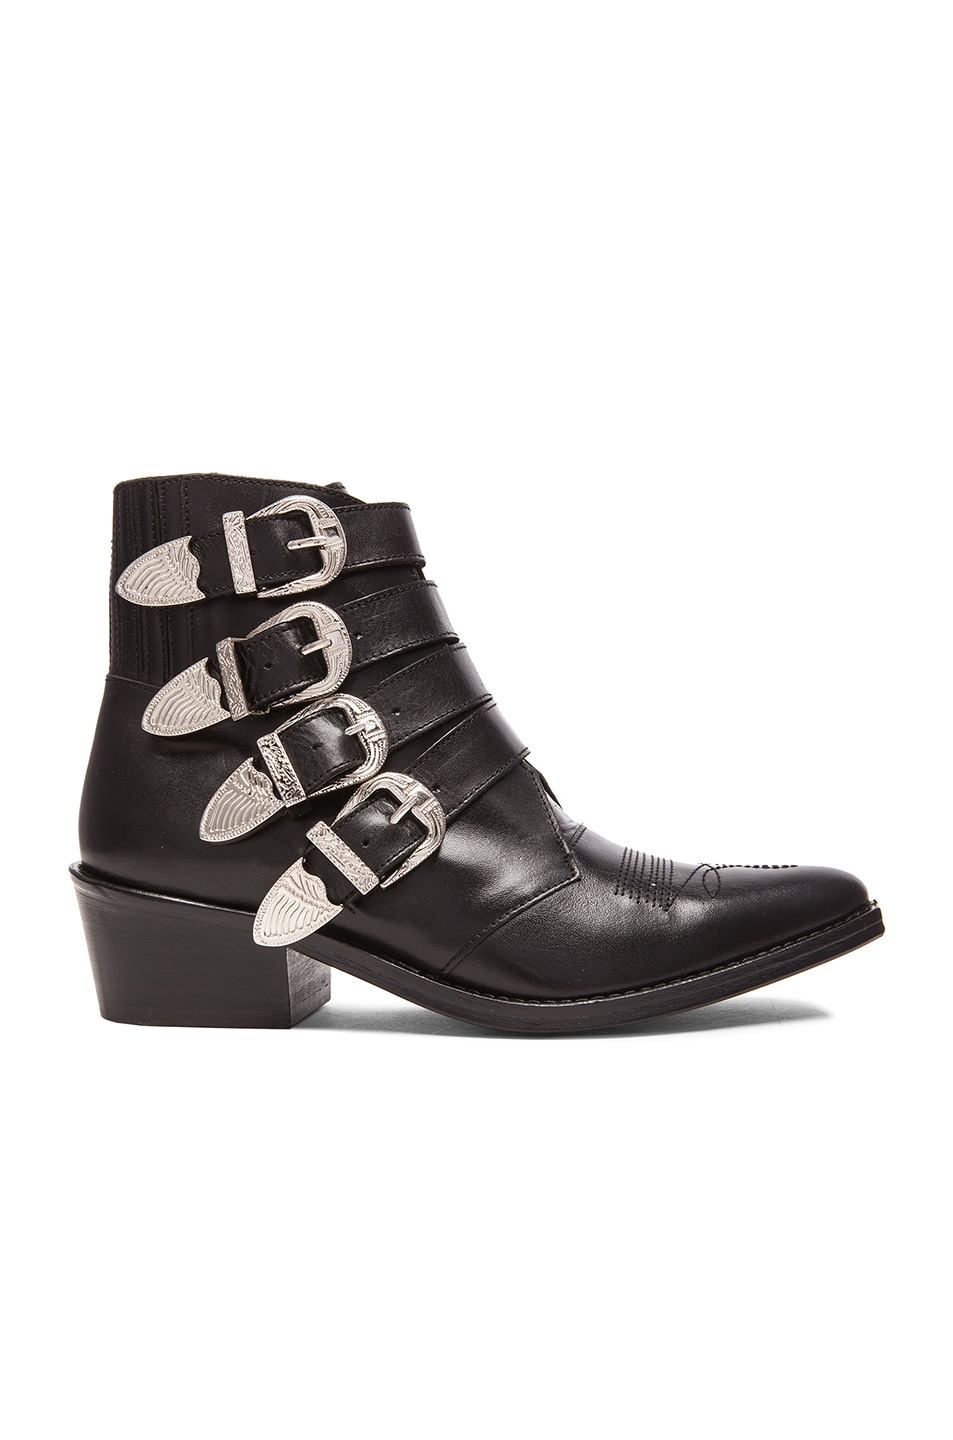 Image 1 of TOGA PULLA Leather Buckled Booties in Black Leather